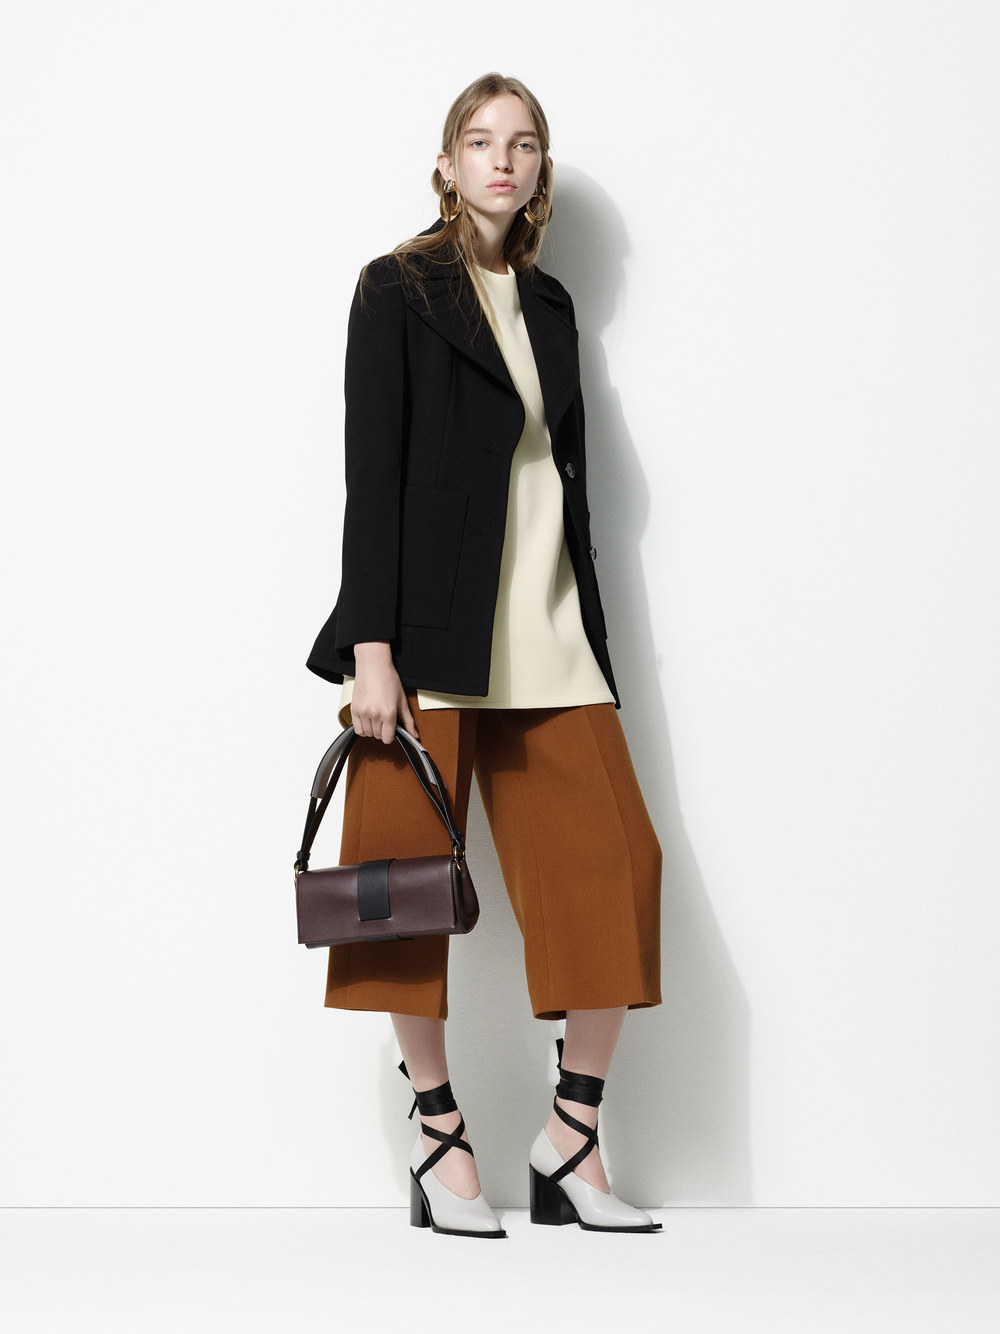 marni-pre-fall-2016-lookbook-07.jpg